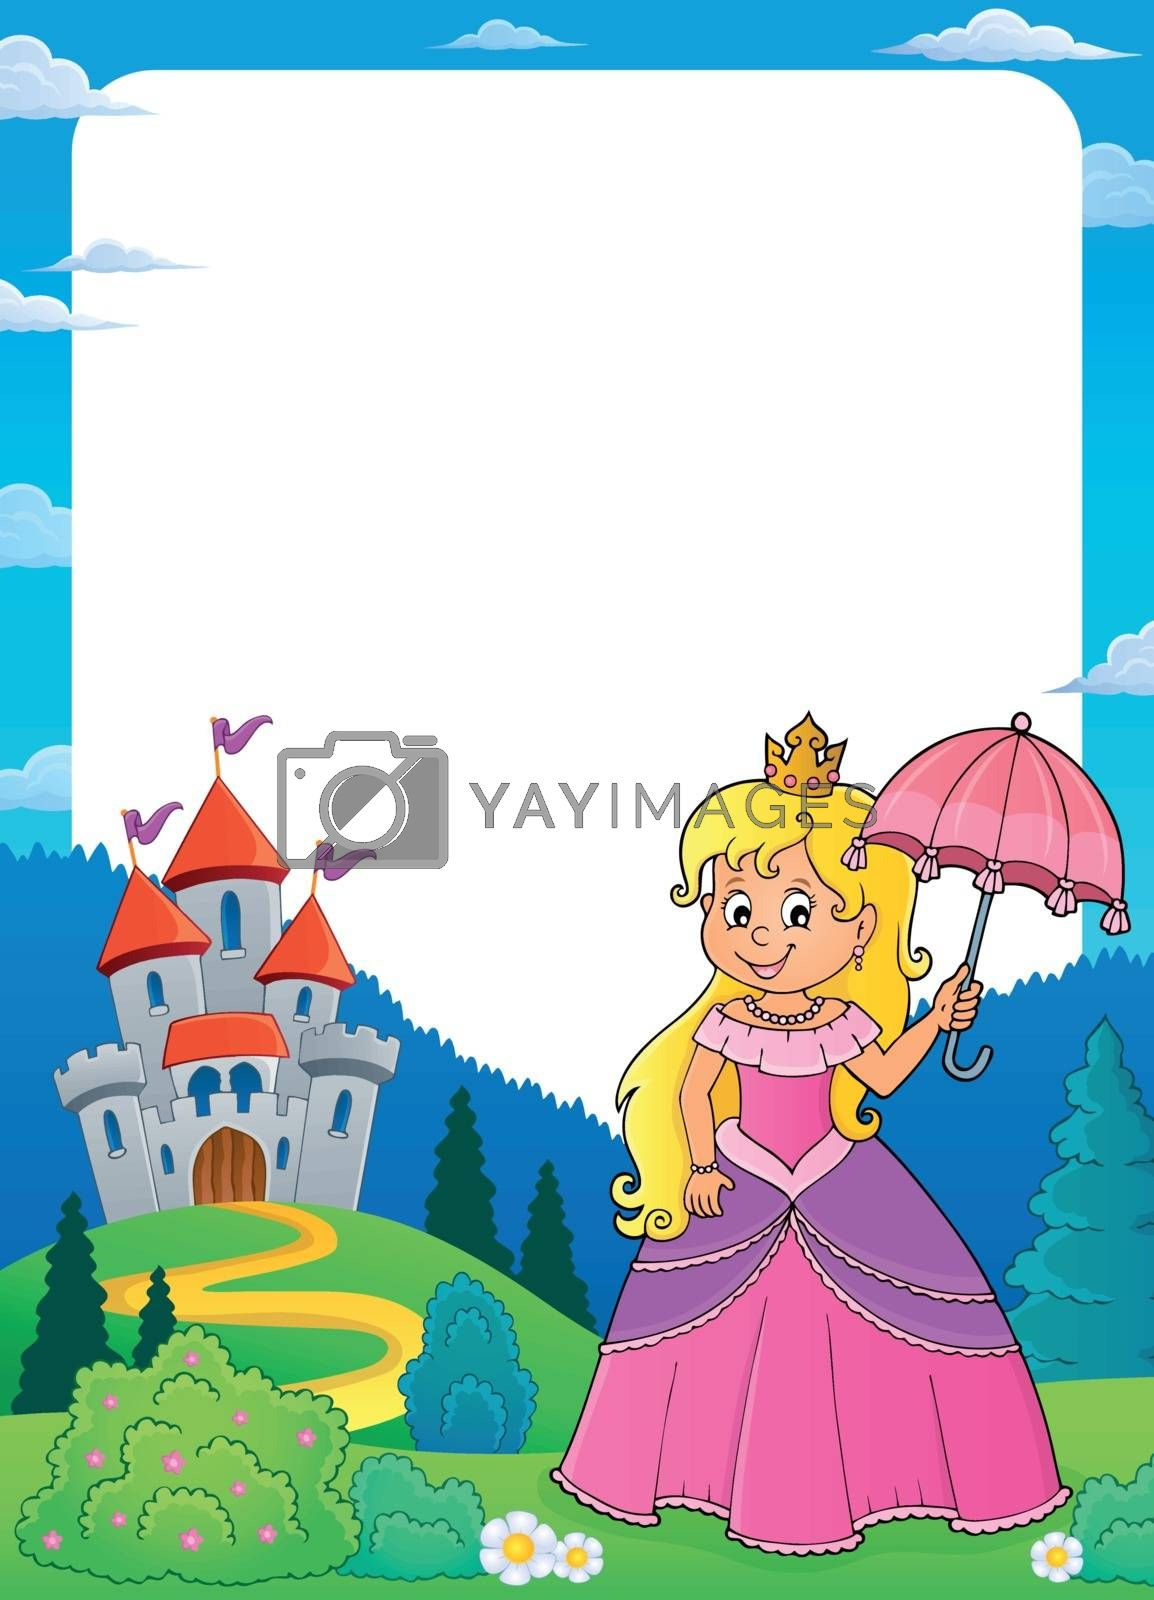 Princess with umbrella theme frame 1 - eps10 vector illustration.